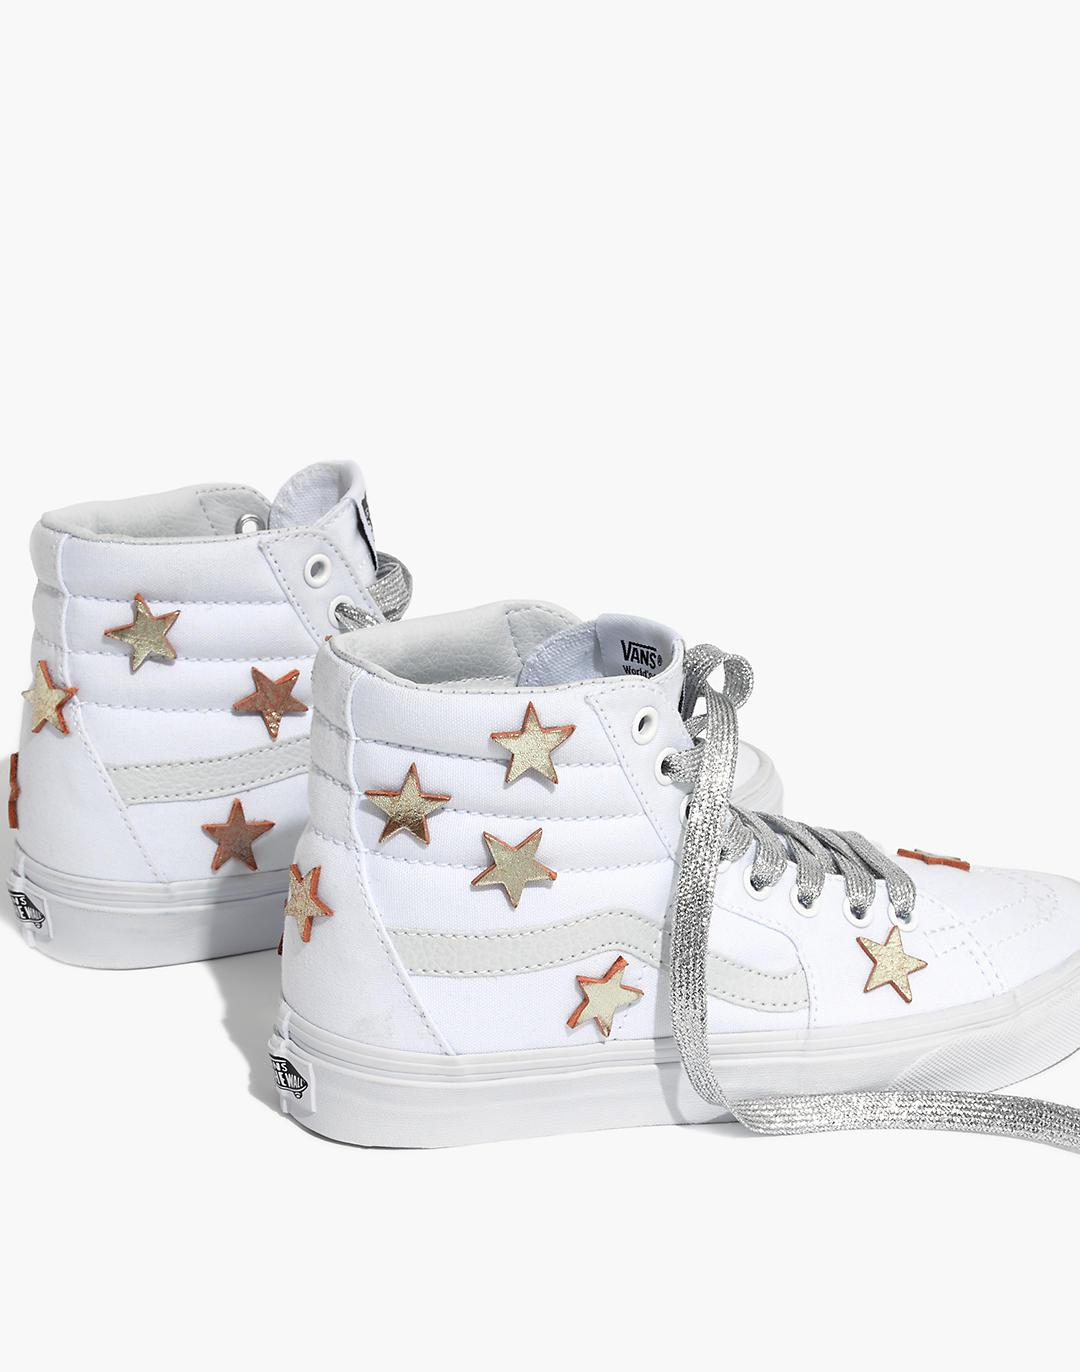 Madewell Star-Patched Vans® Unisex SK8-Hi High-Top Sneakers